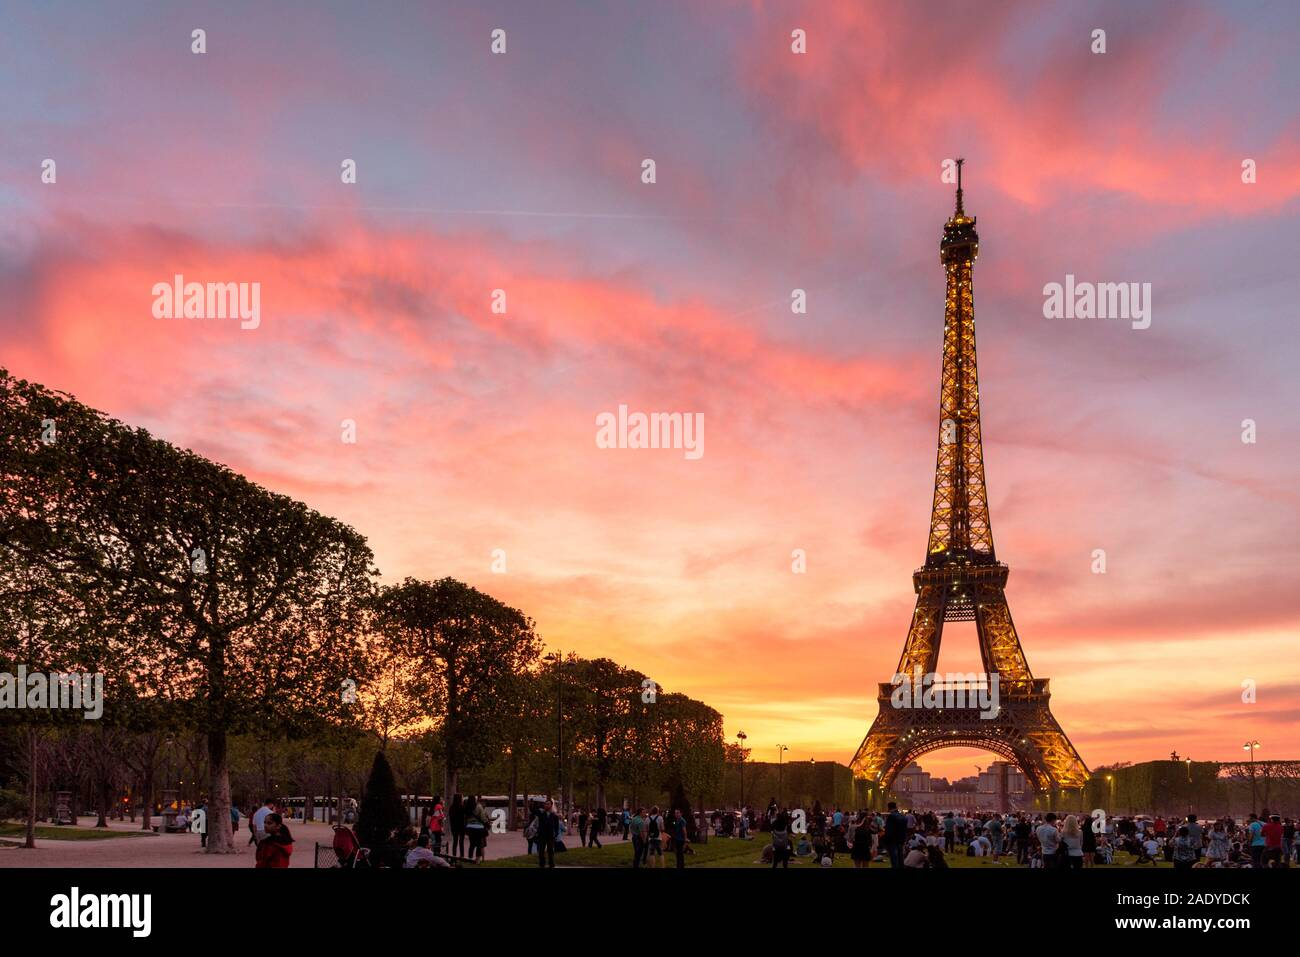 The Eiffel Tower At Dusk With A Pink And Purple Sky Stock Photo Alamy